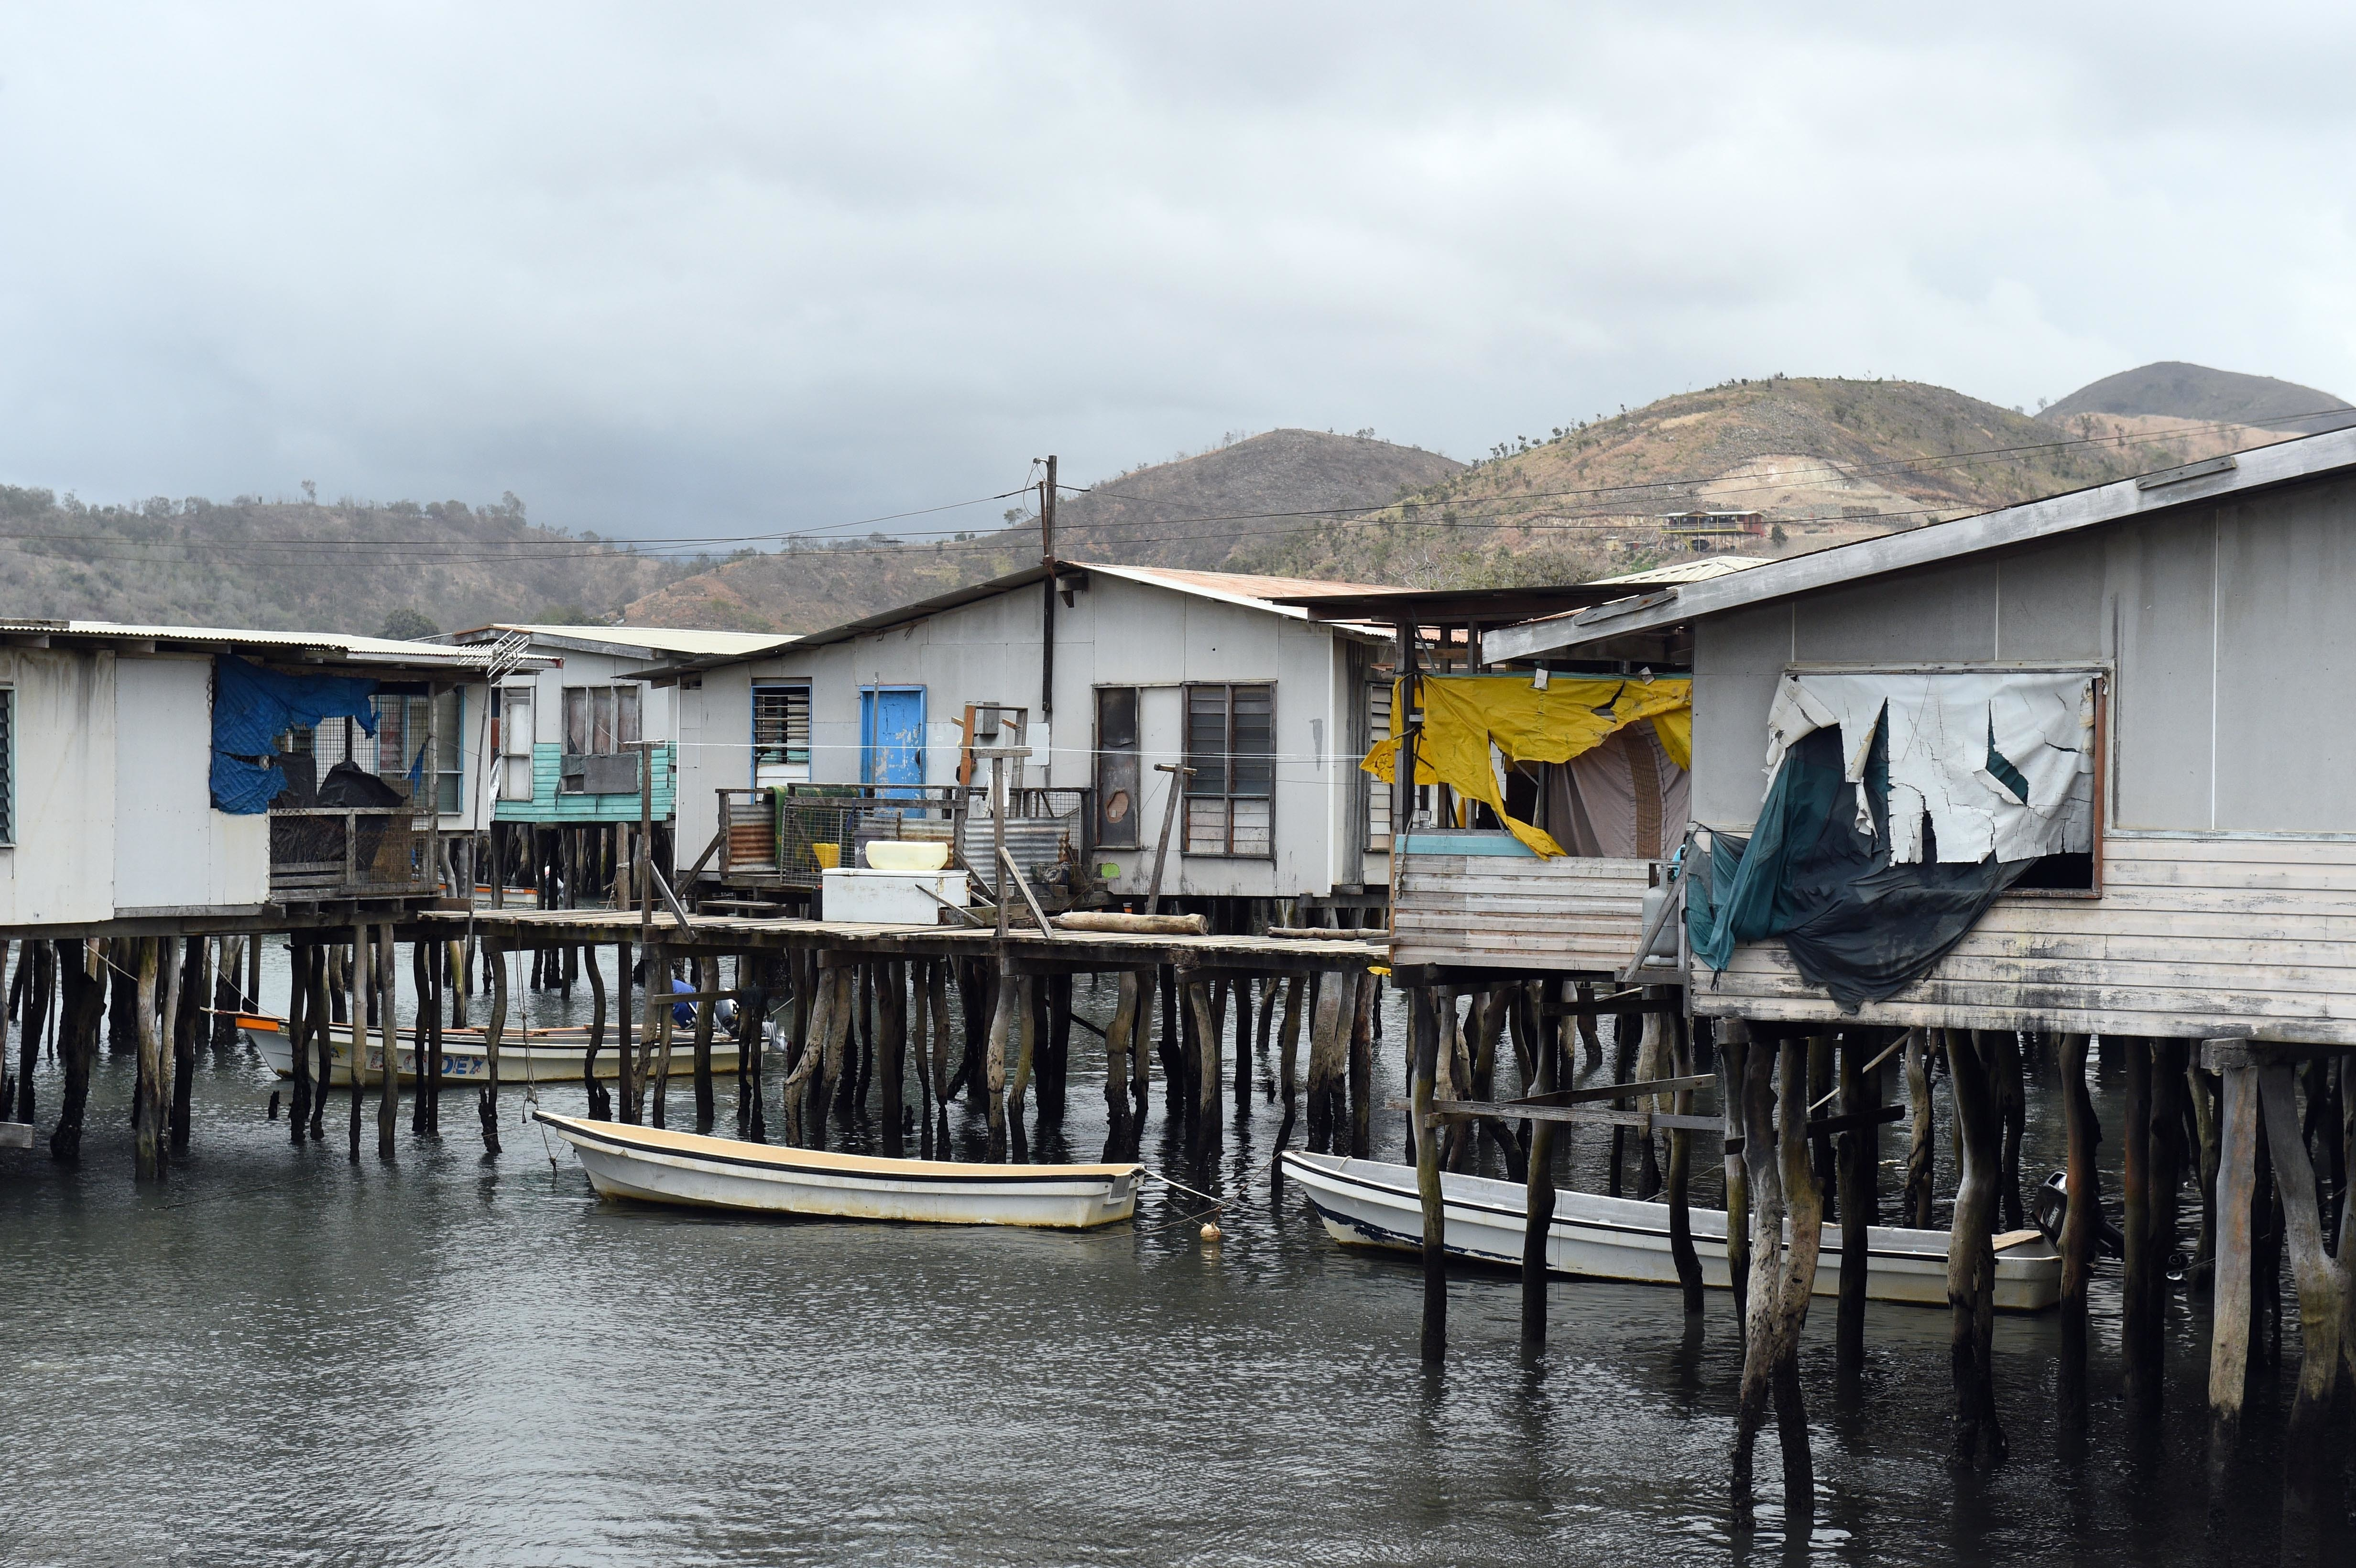 Boats are moored outside homes in the stilted village of Hanuabada near Port Moresby, Papua New Guinea.